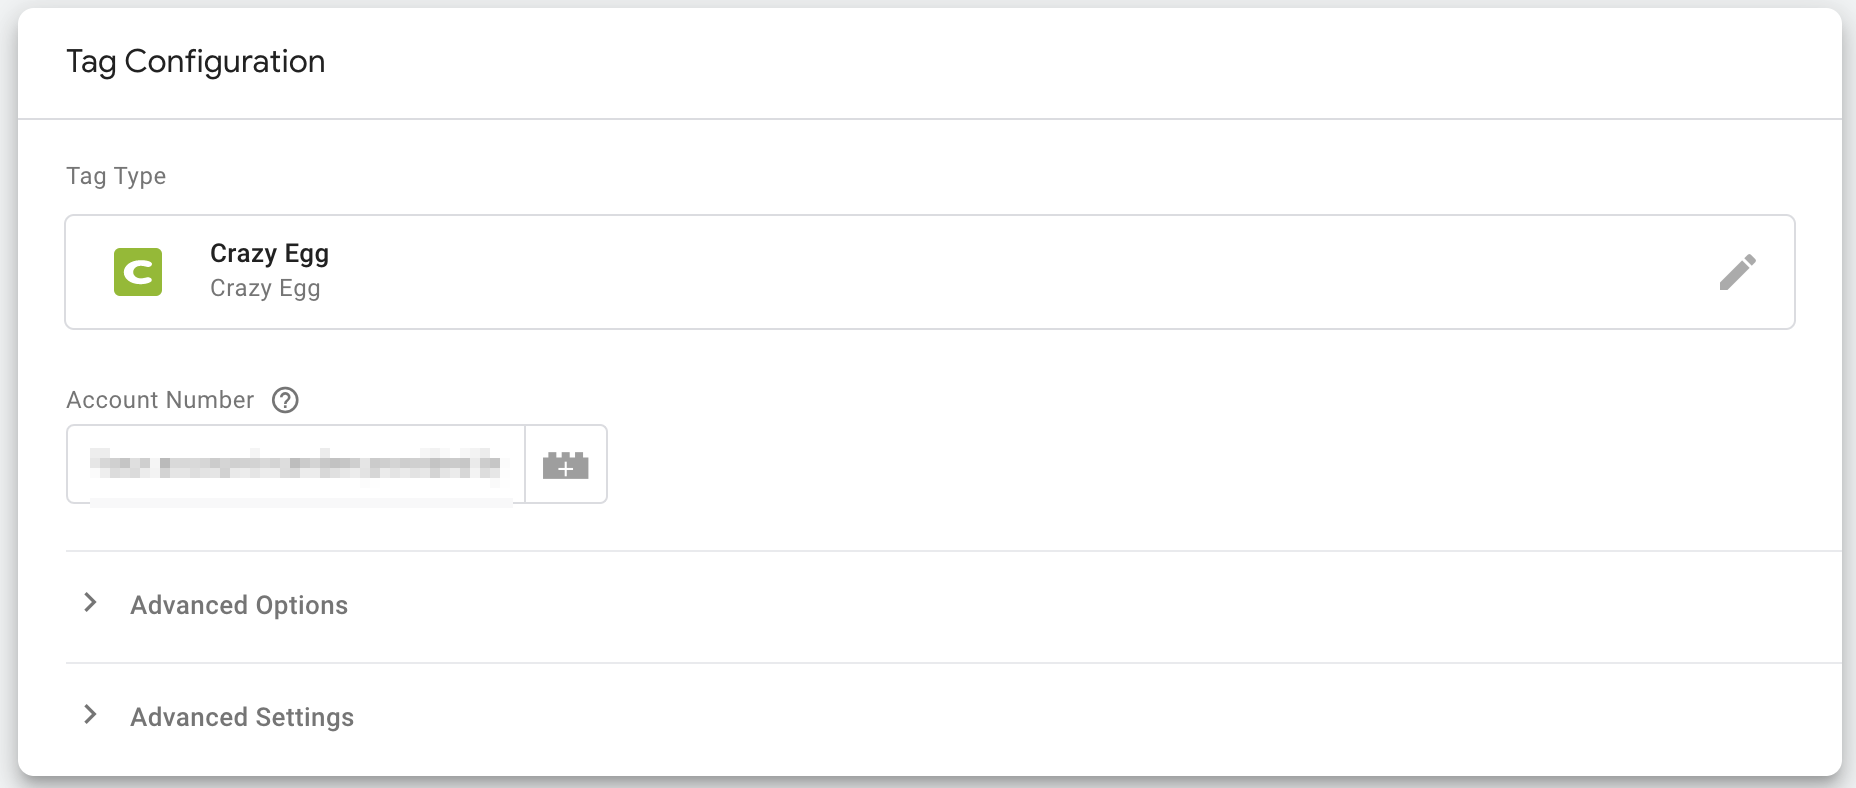 Crazy Egg Tag in Google Tag Manager